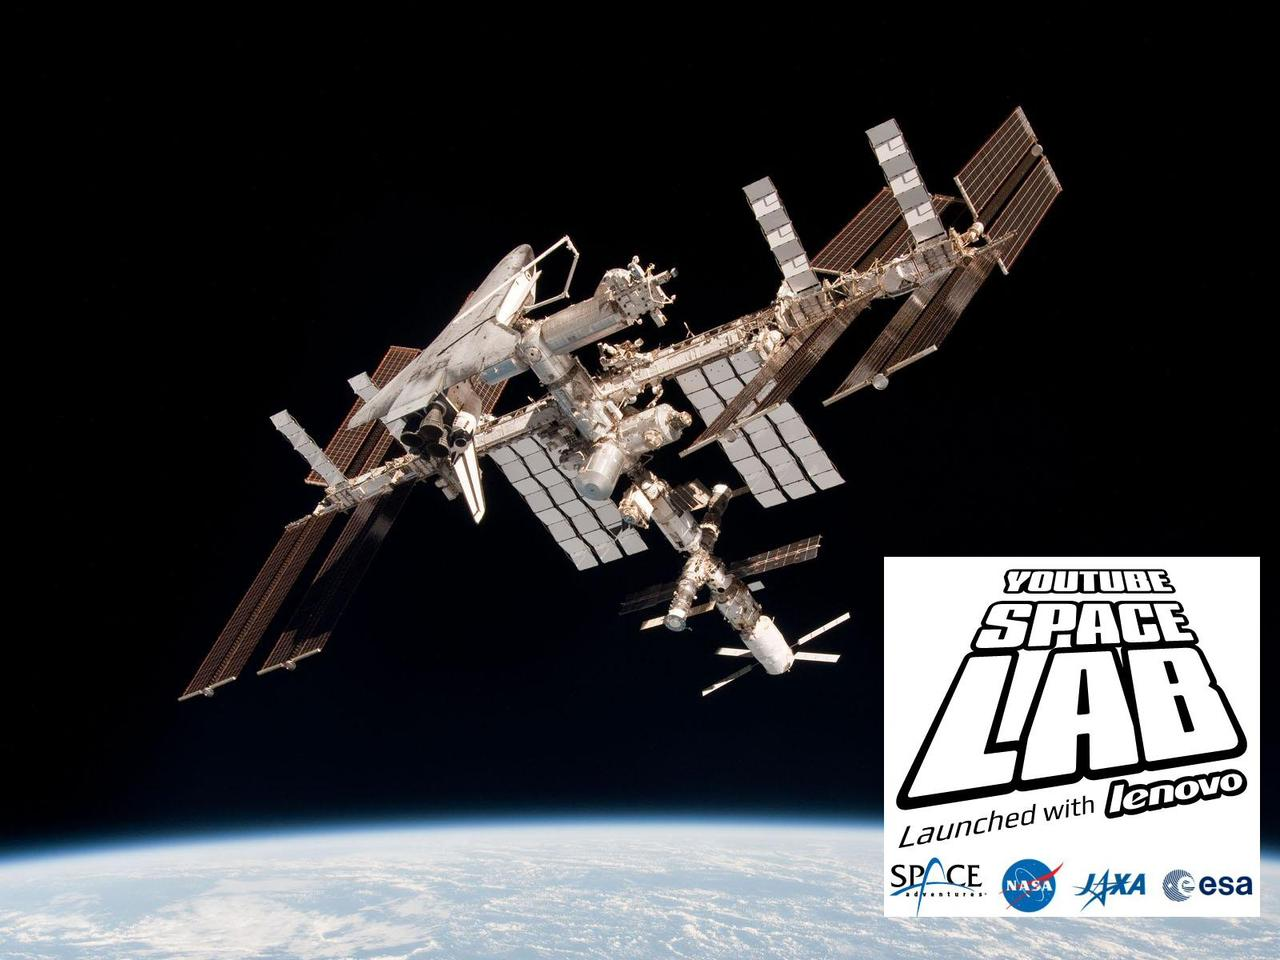 YouTube and Lenovo have launched a global student challenge to design an experiment which can be performed in space, with the winning entries going on to be performed by astronauts aboard the International Space Station (Photo: NASA/Google)